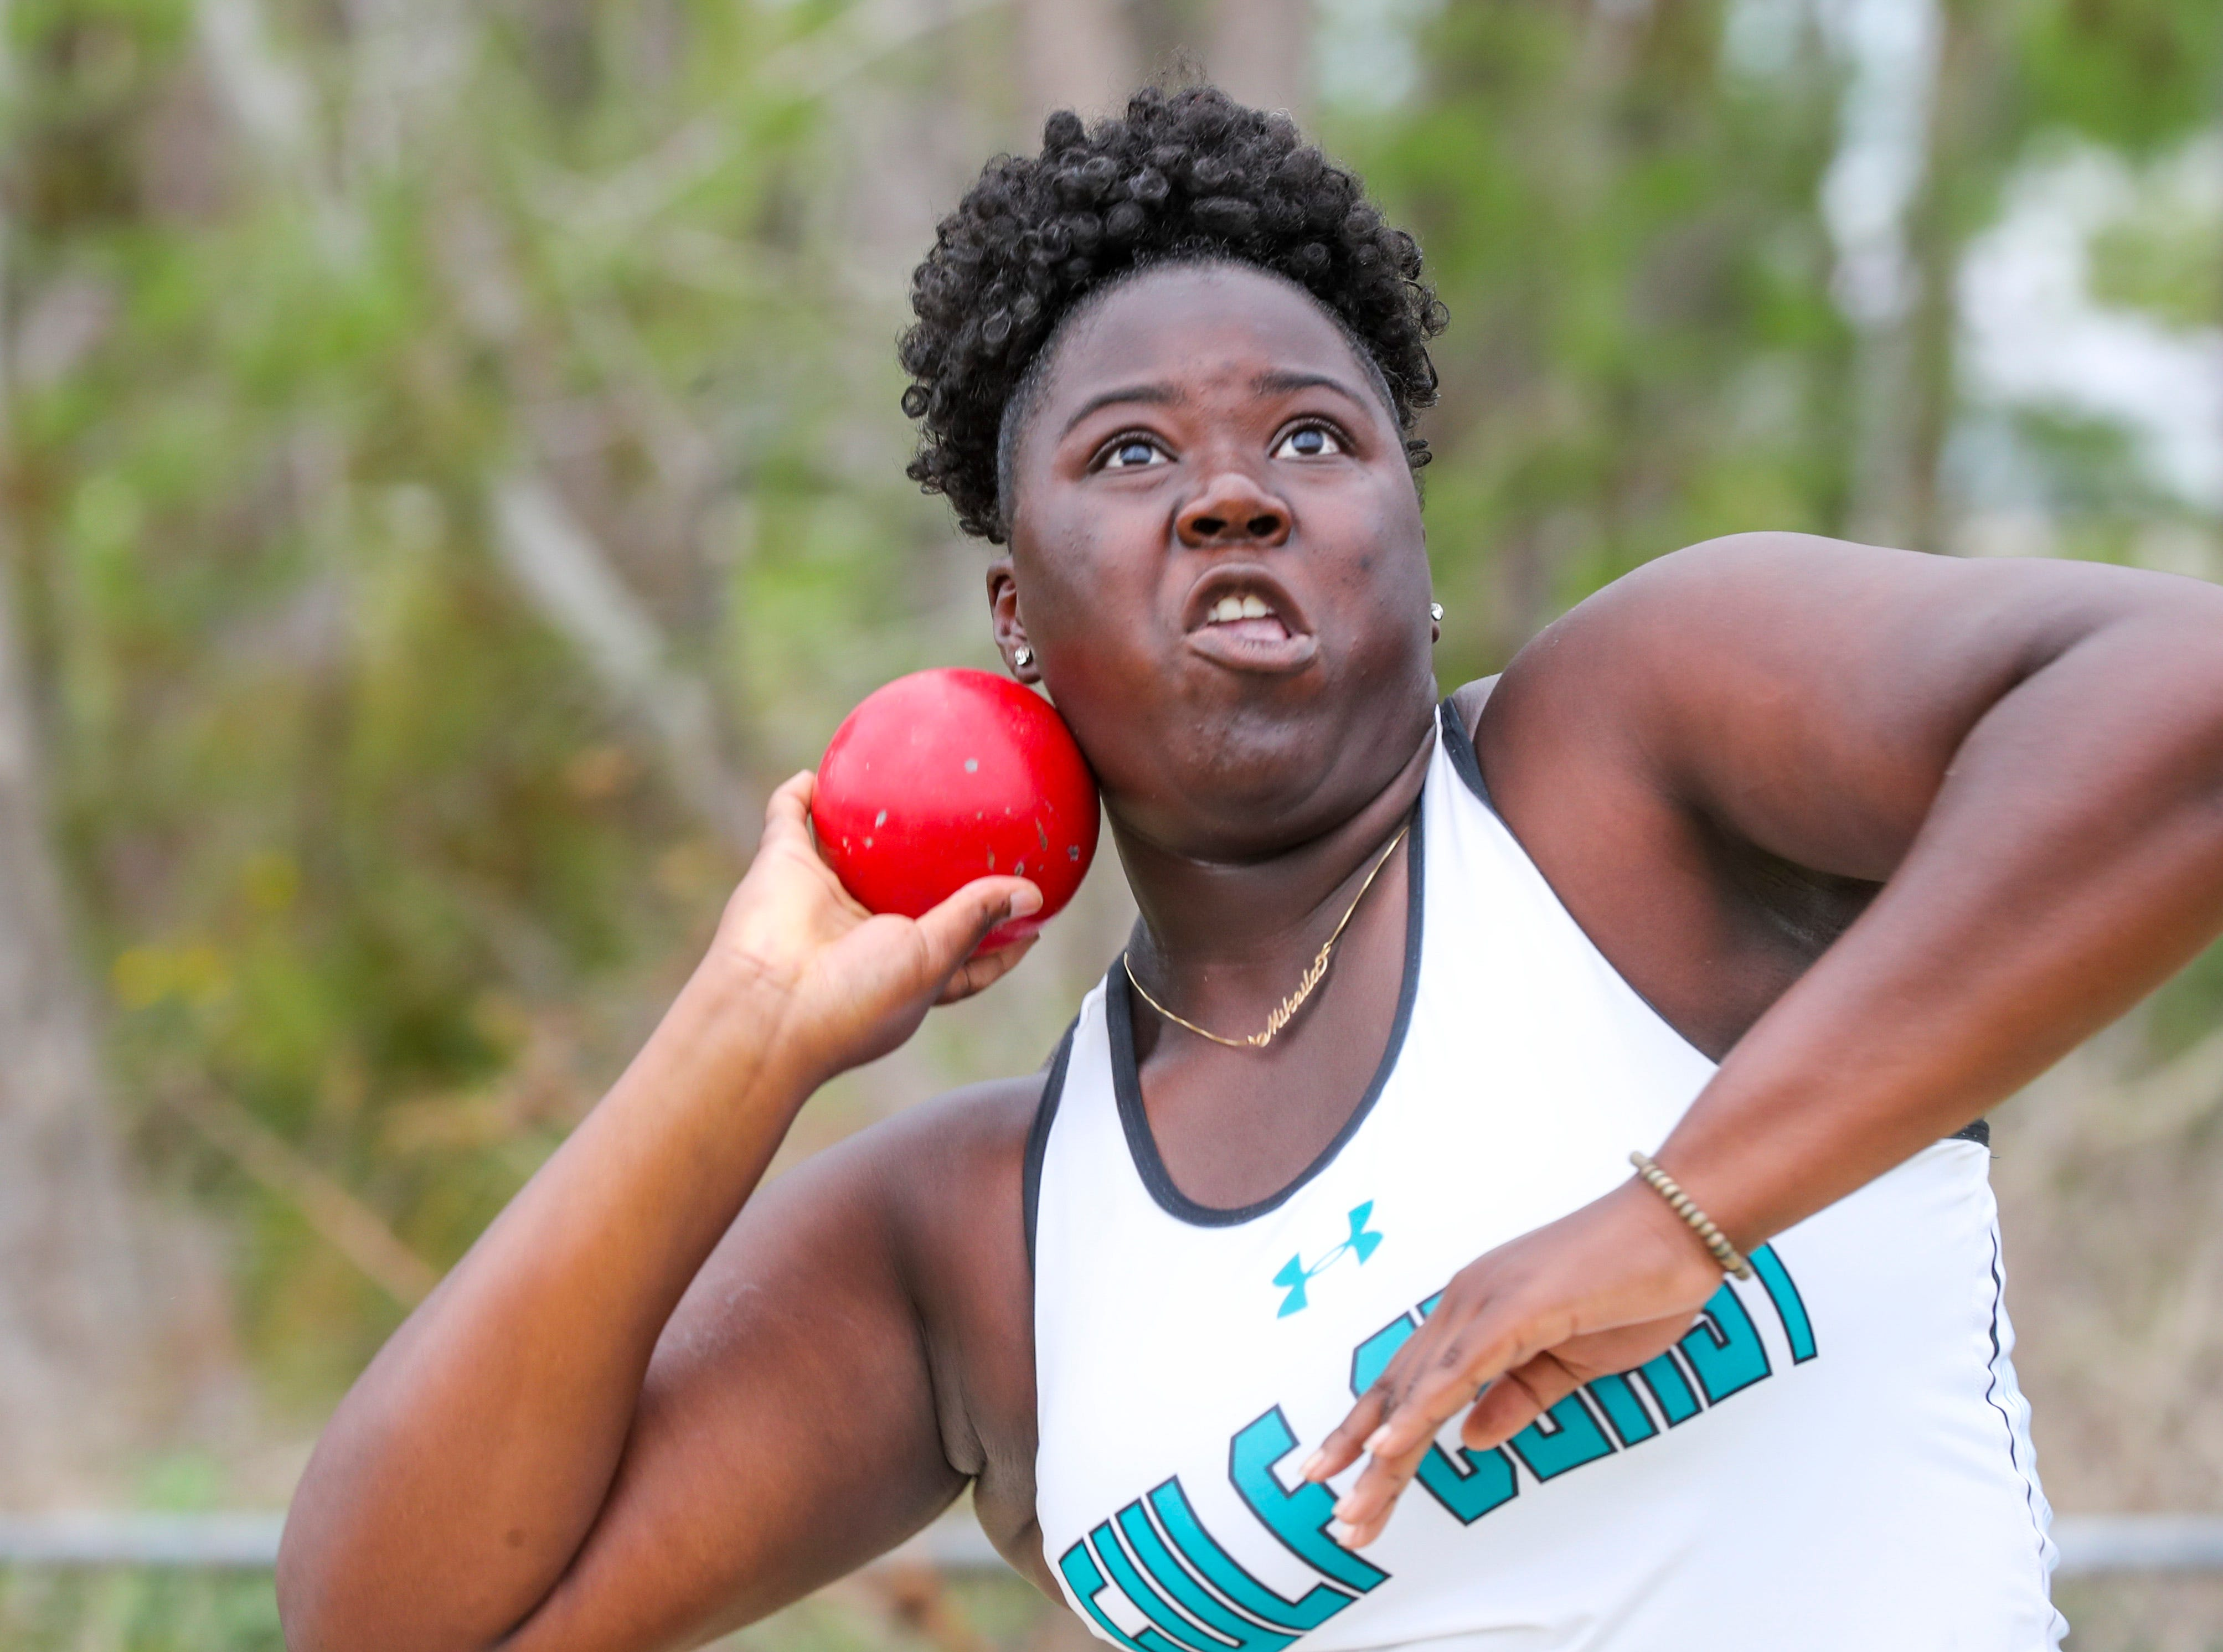 1st place, Mikeila Joseph